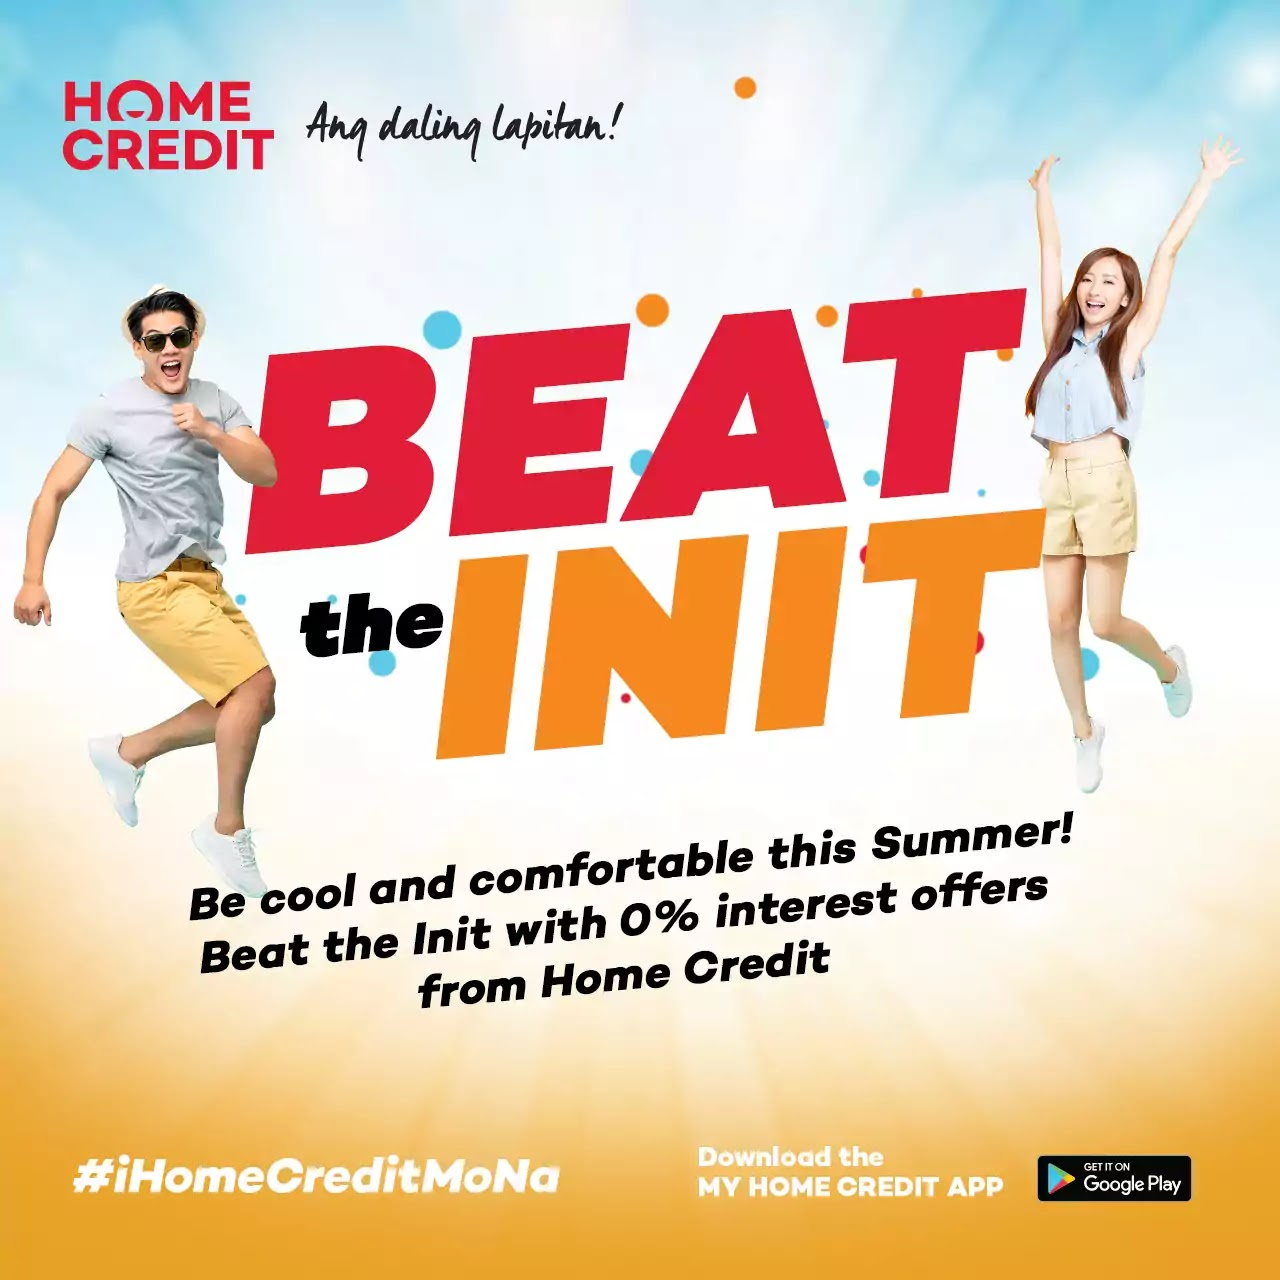 Beat the Init with Home Credit